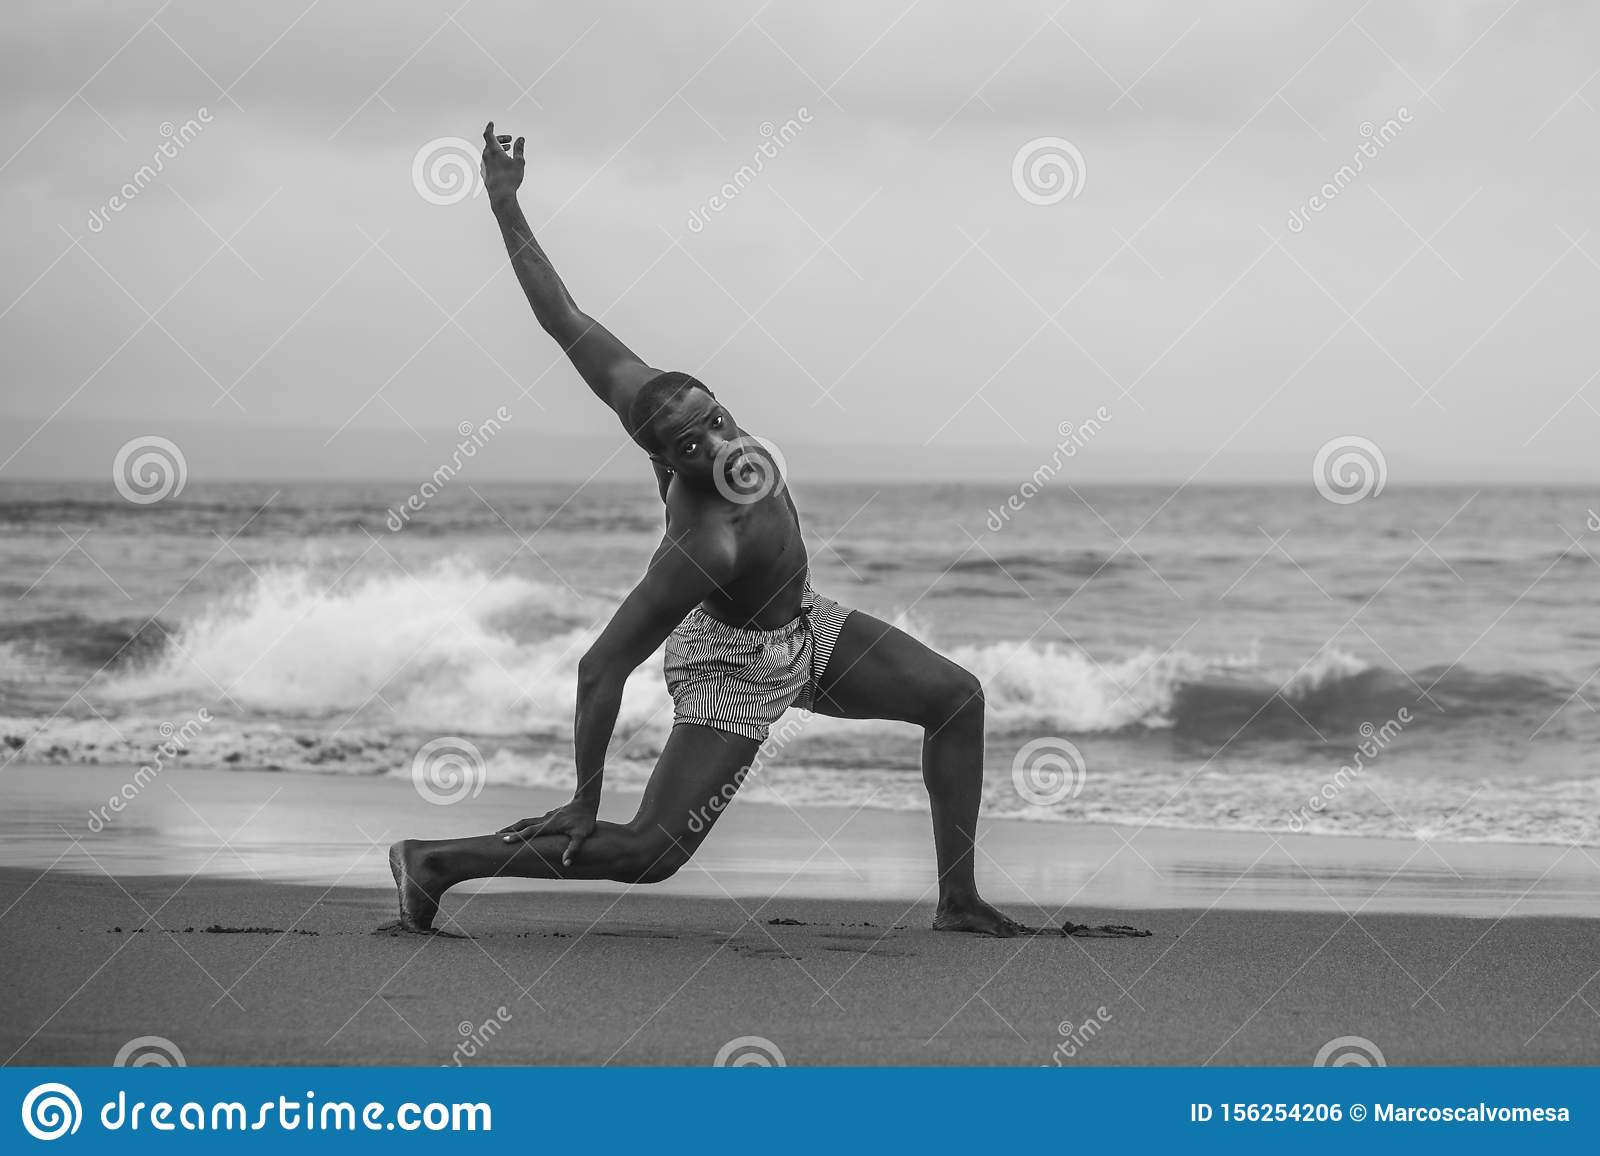 Dramatic contemporary dance choreographer doing ballet beach workout, young attractive and athletic afro black American man